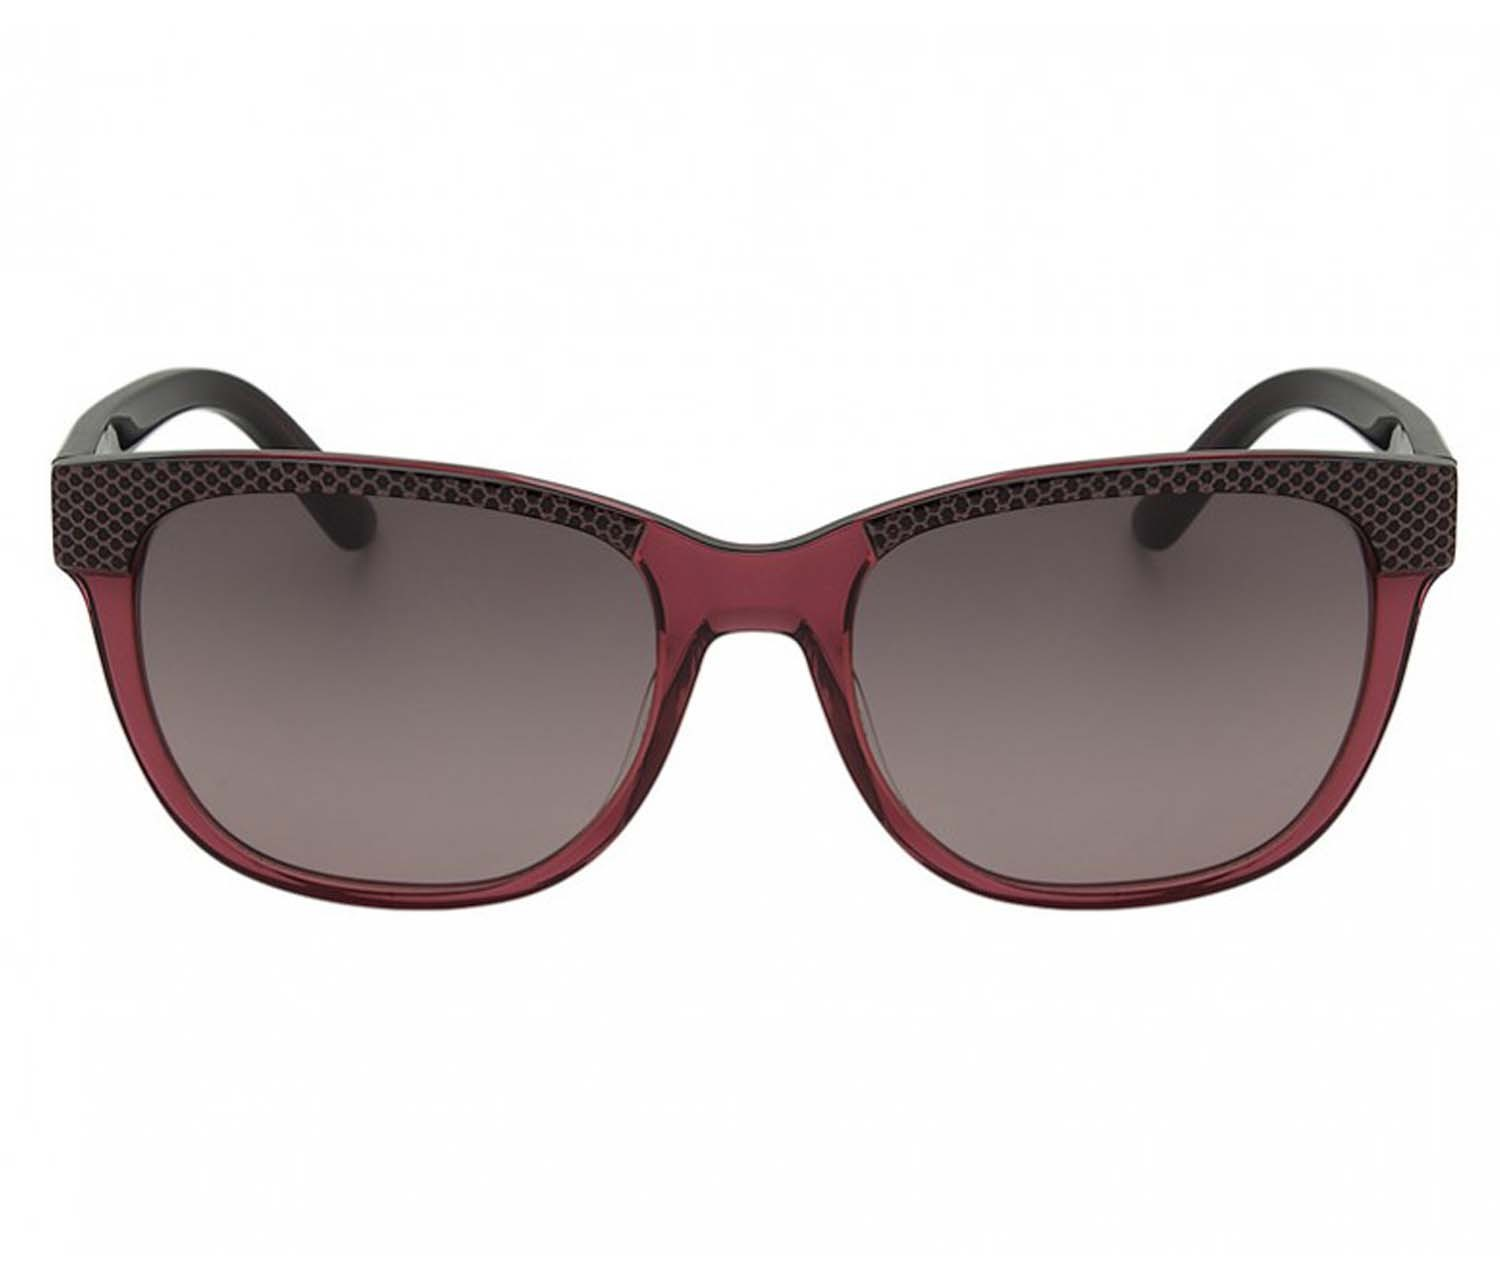 Lacoste L700S 615 Burgundy Brown Square Cat Sunglasses - Brands For Less 1f6ba8a364